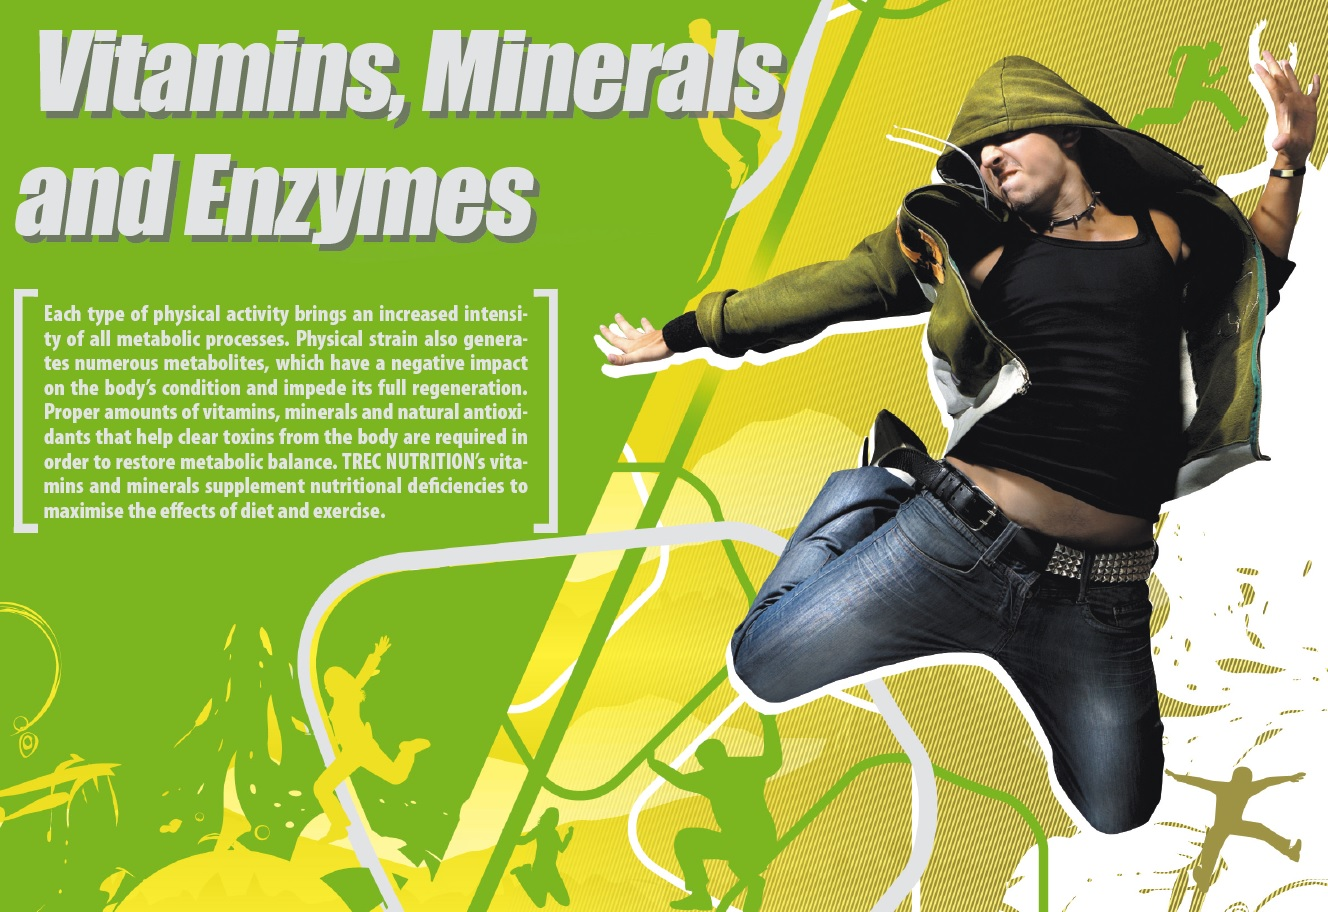 Vitamins, Minerals and Enzymes